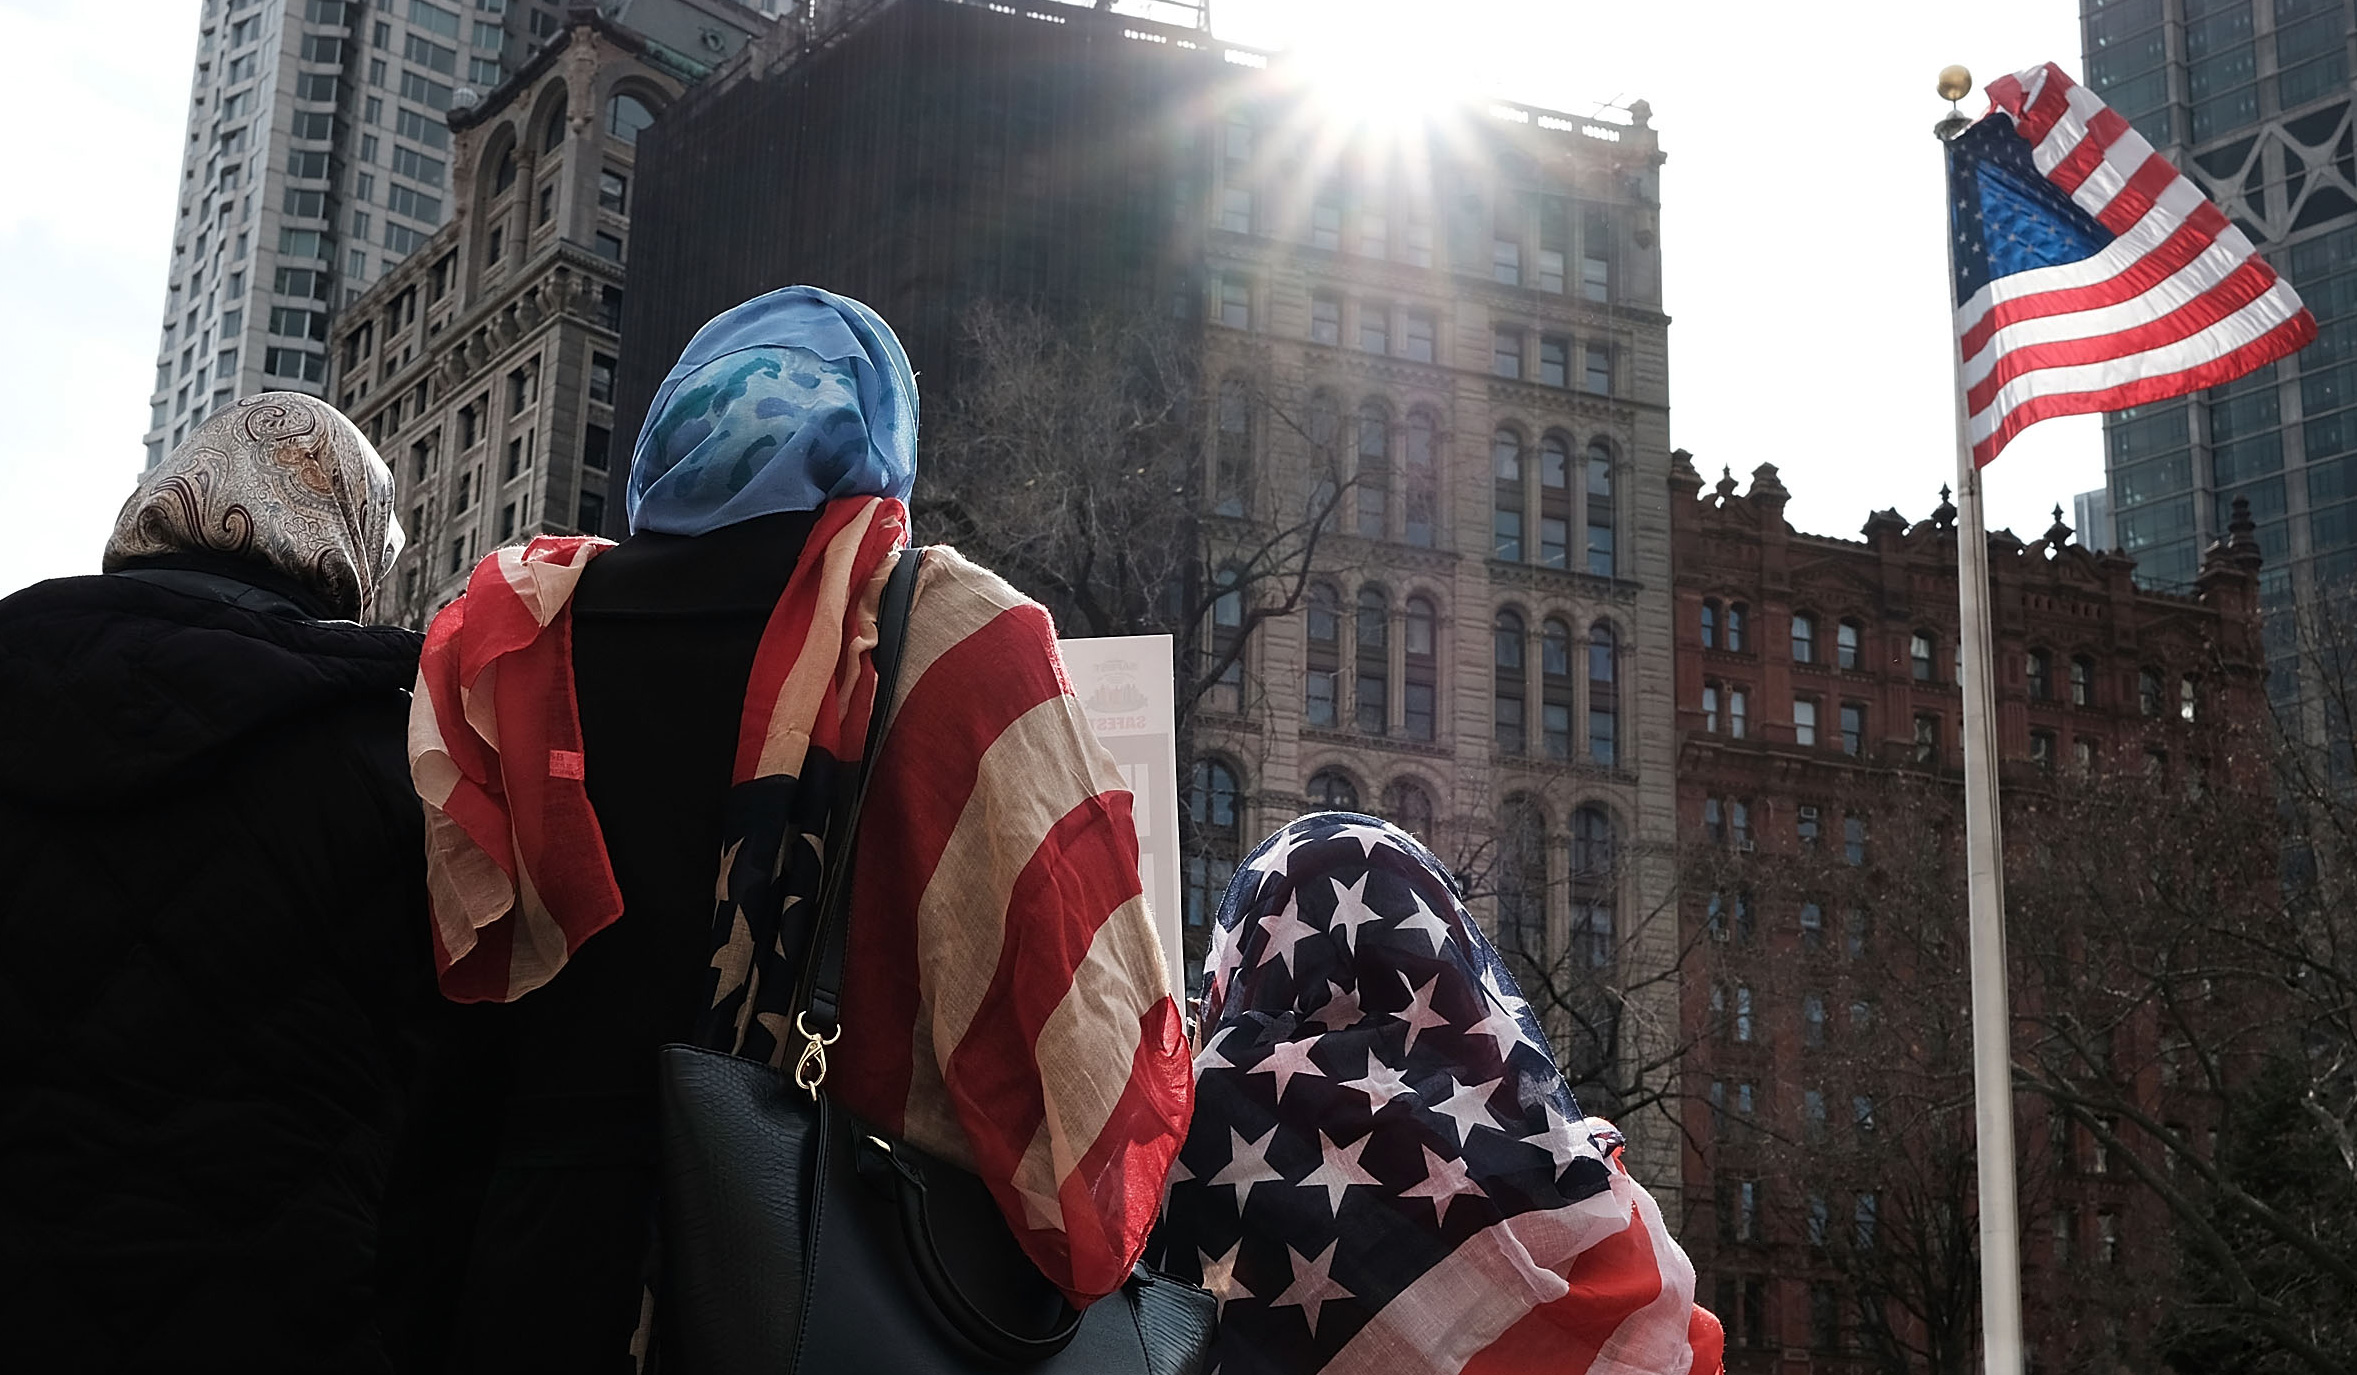 Three women wearing hijabs look up at an American flag. In that same direction, the sun shines over tall buildings in the background.